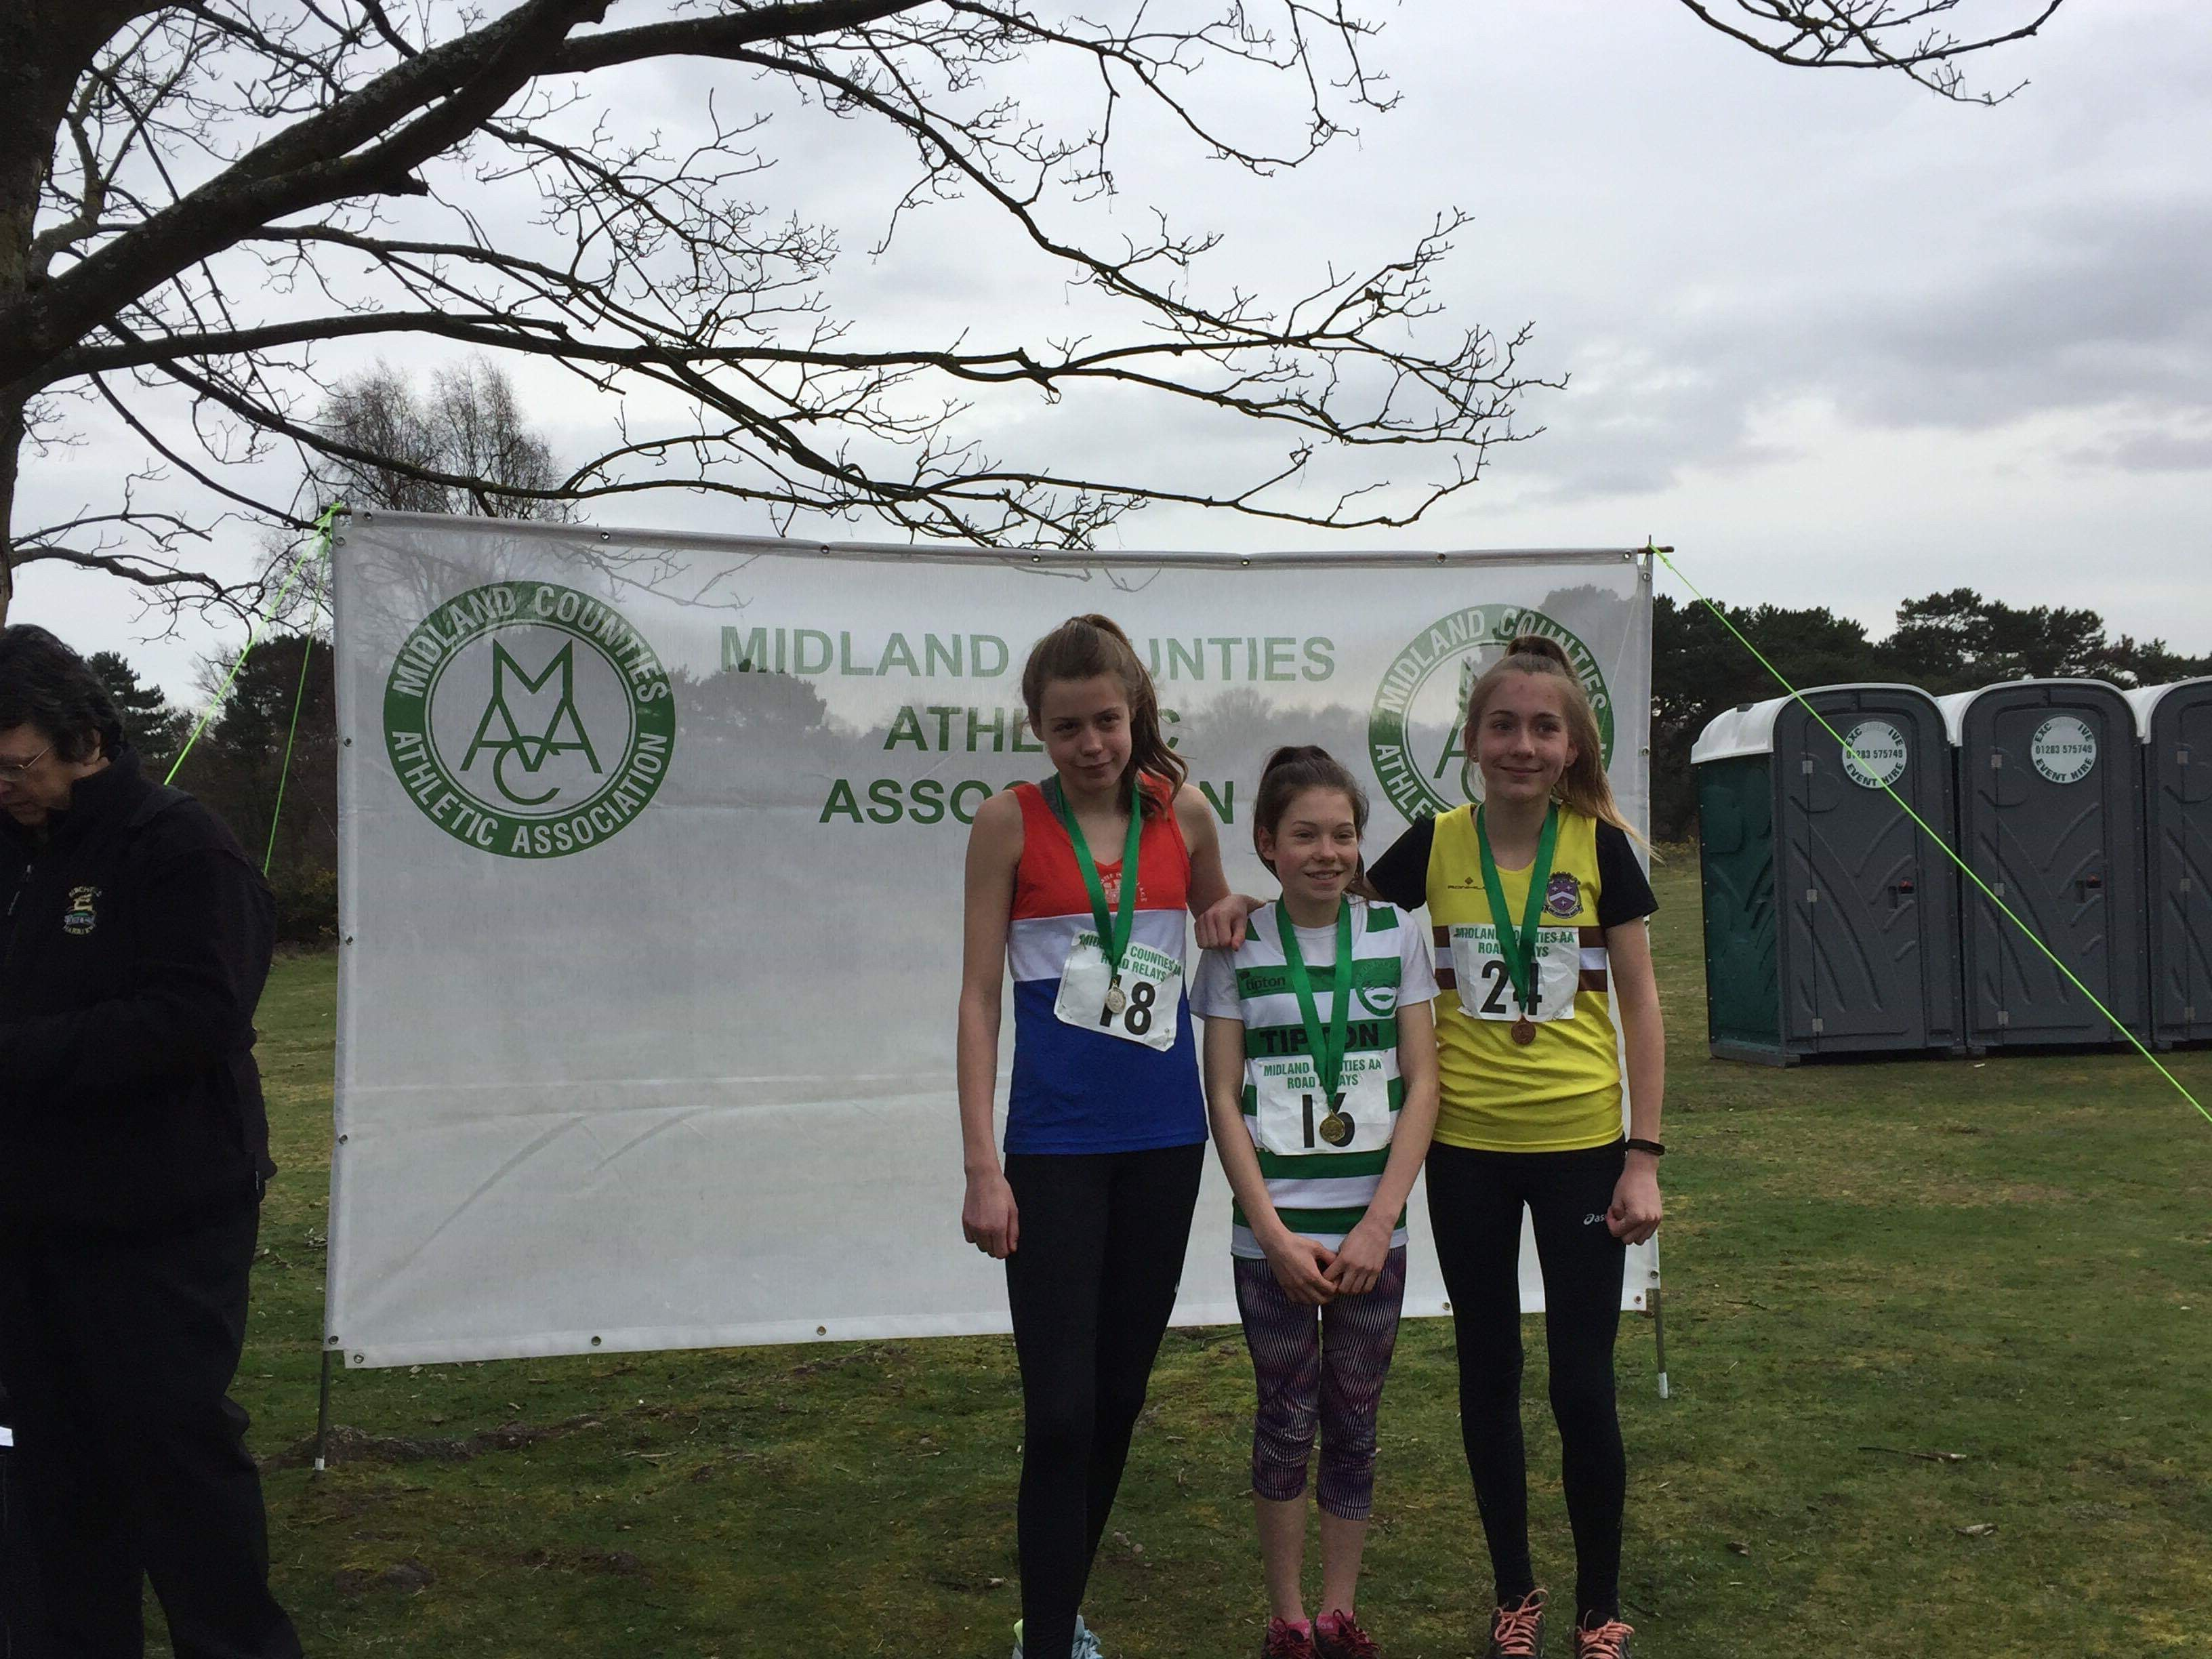 Midlands 5km Road Championships – 23/3/2019